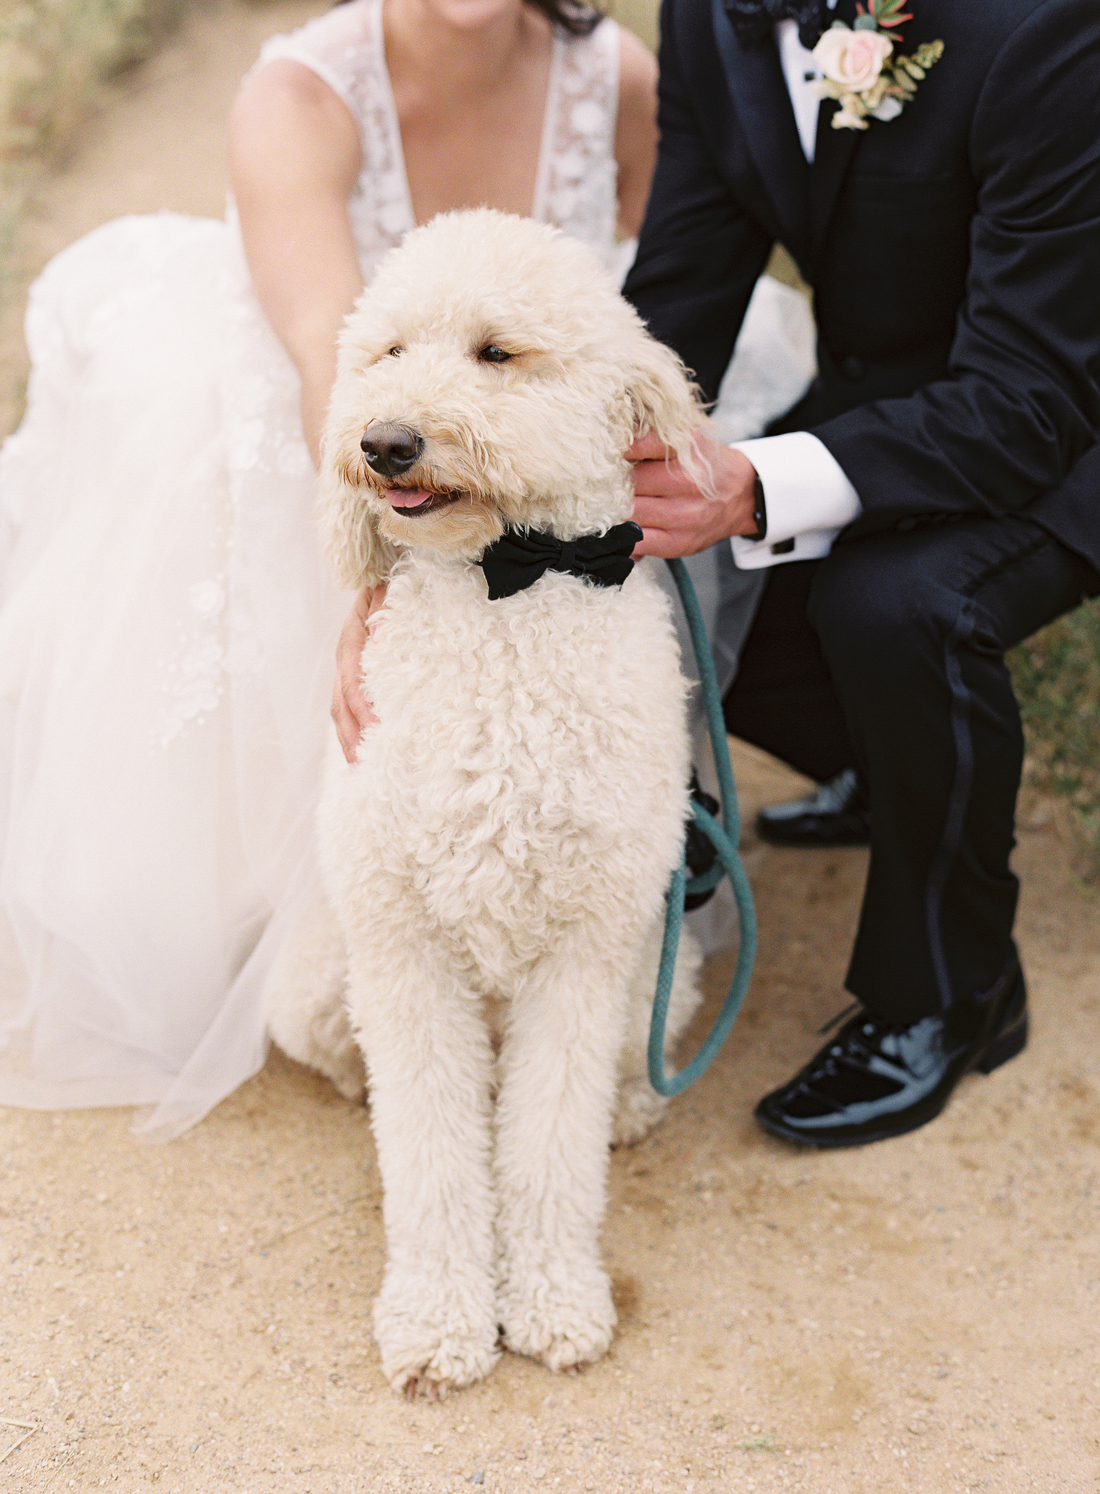 bride and groom's dog as best man with bowtie